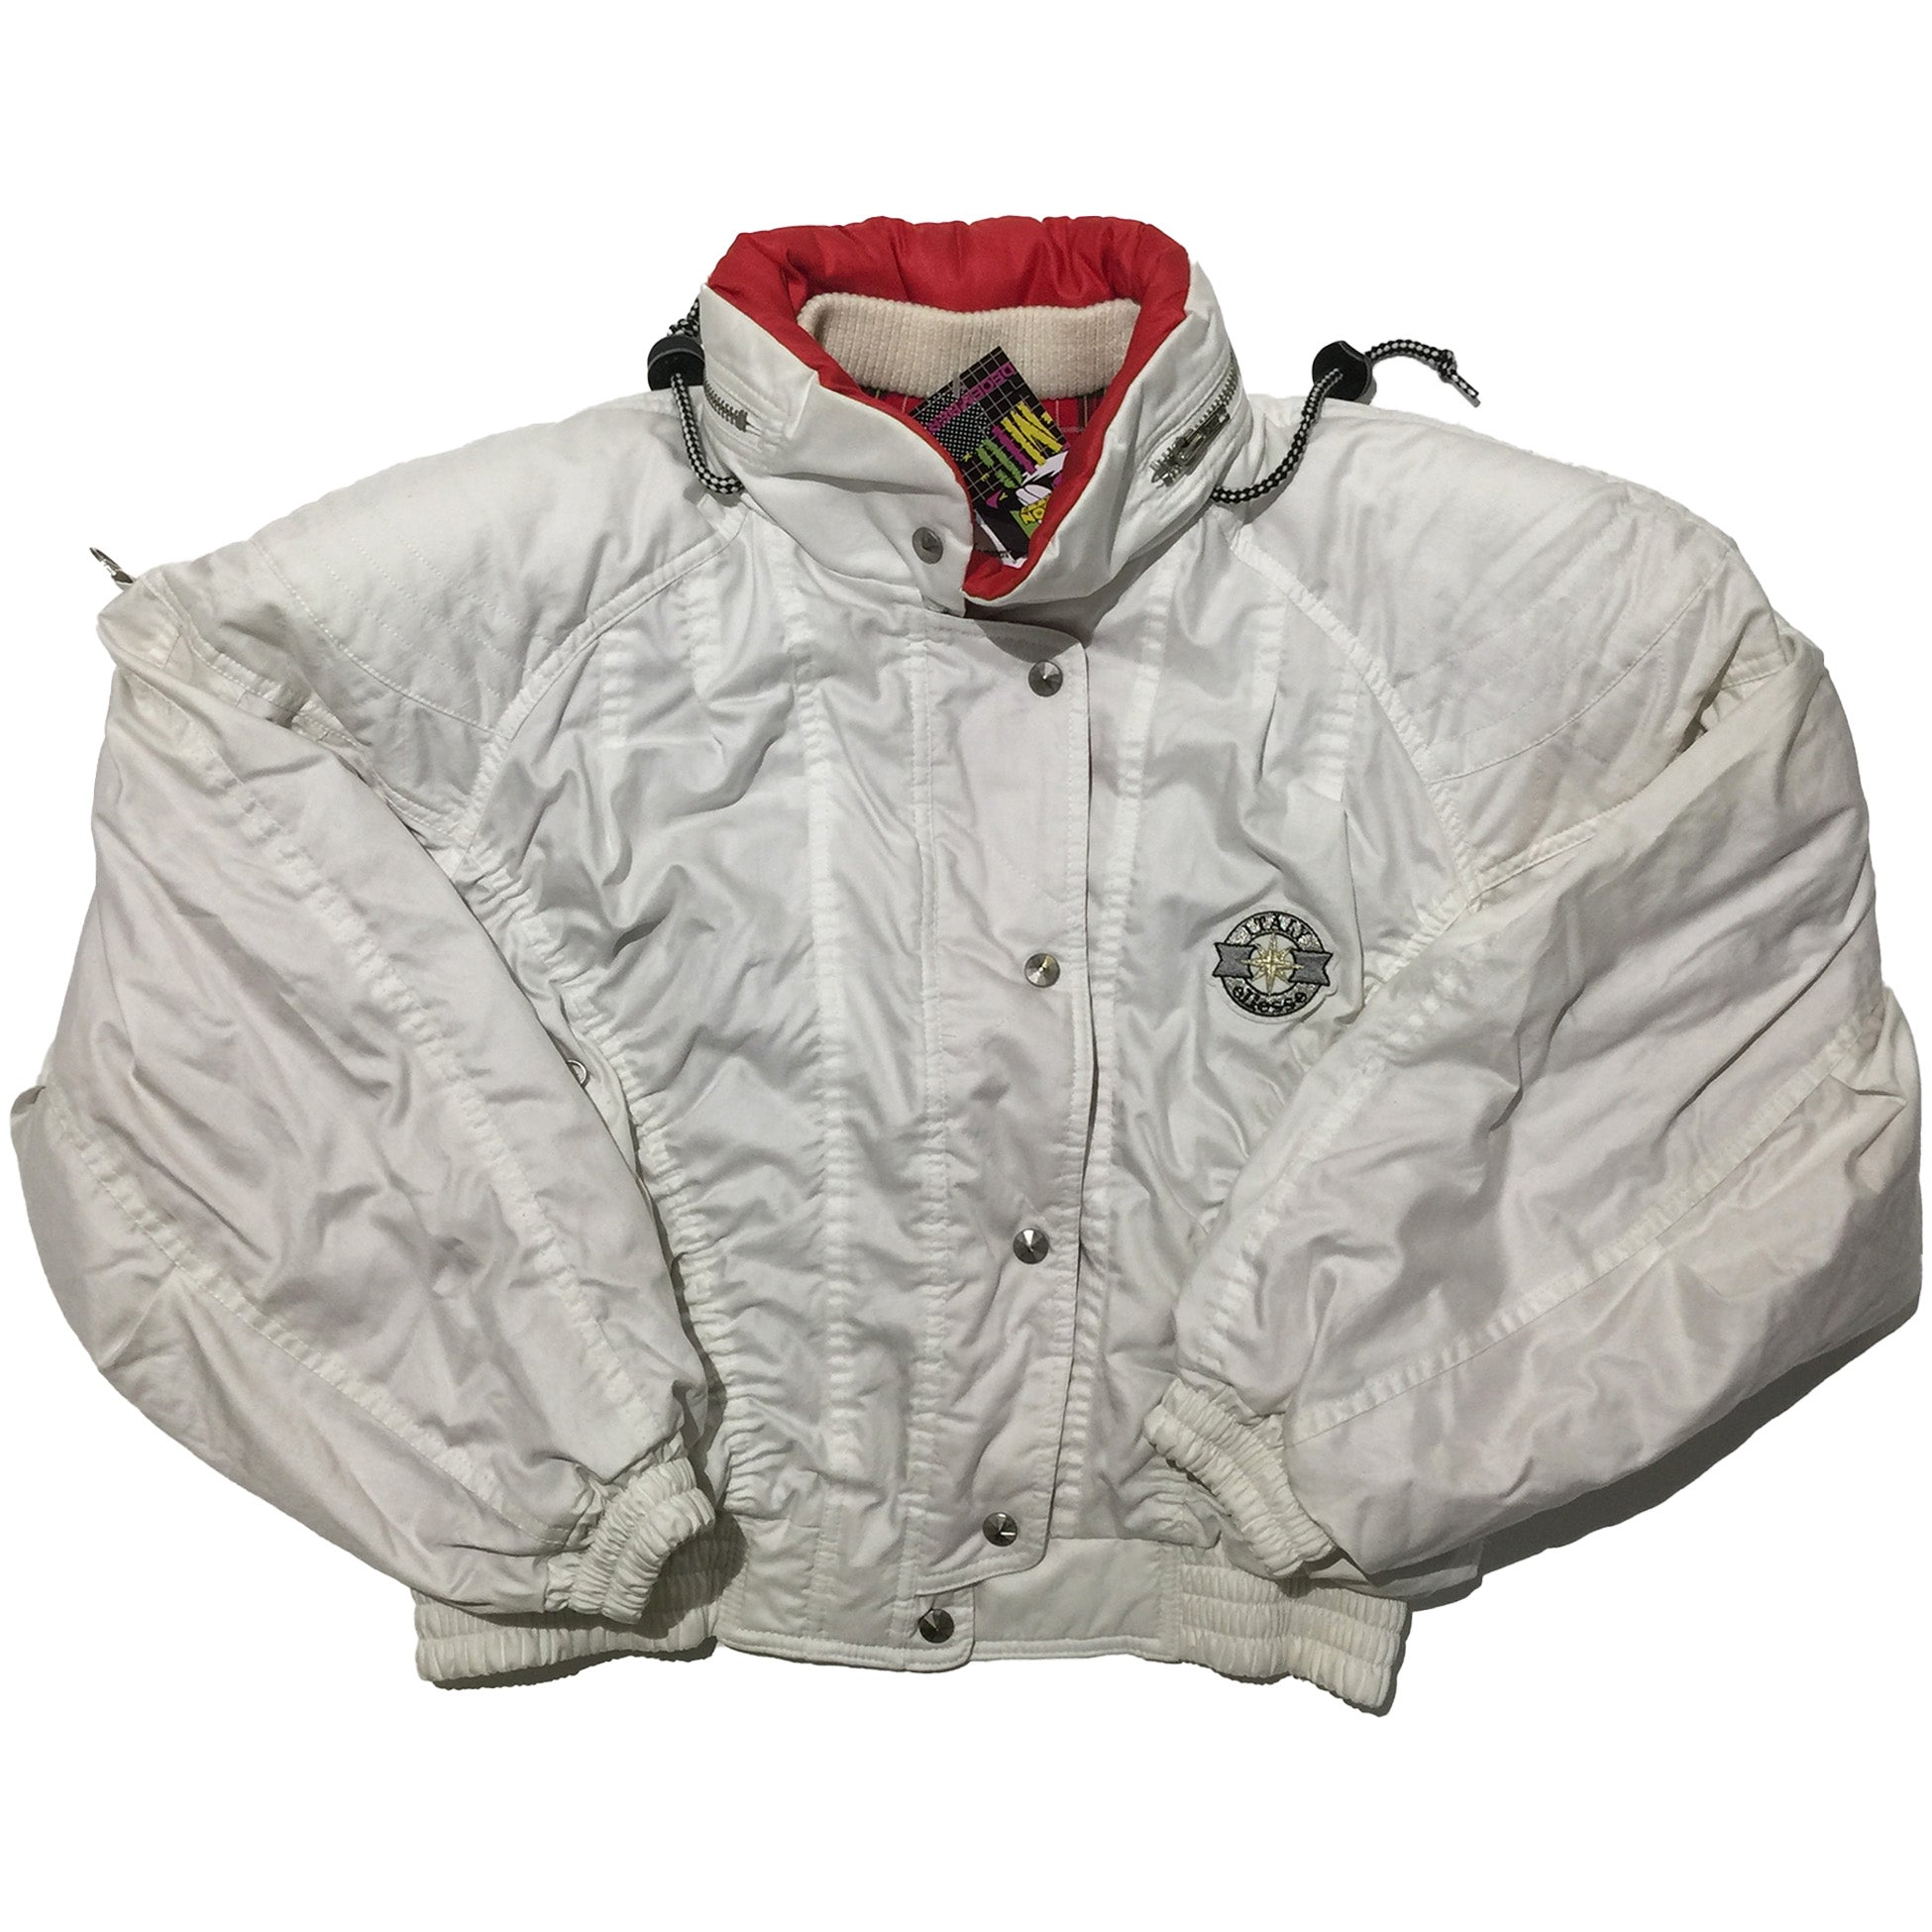 Ellesse White and Red Accent Jacket